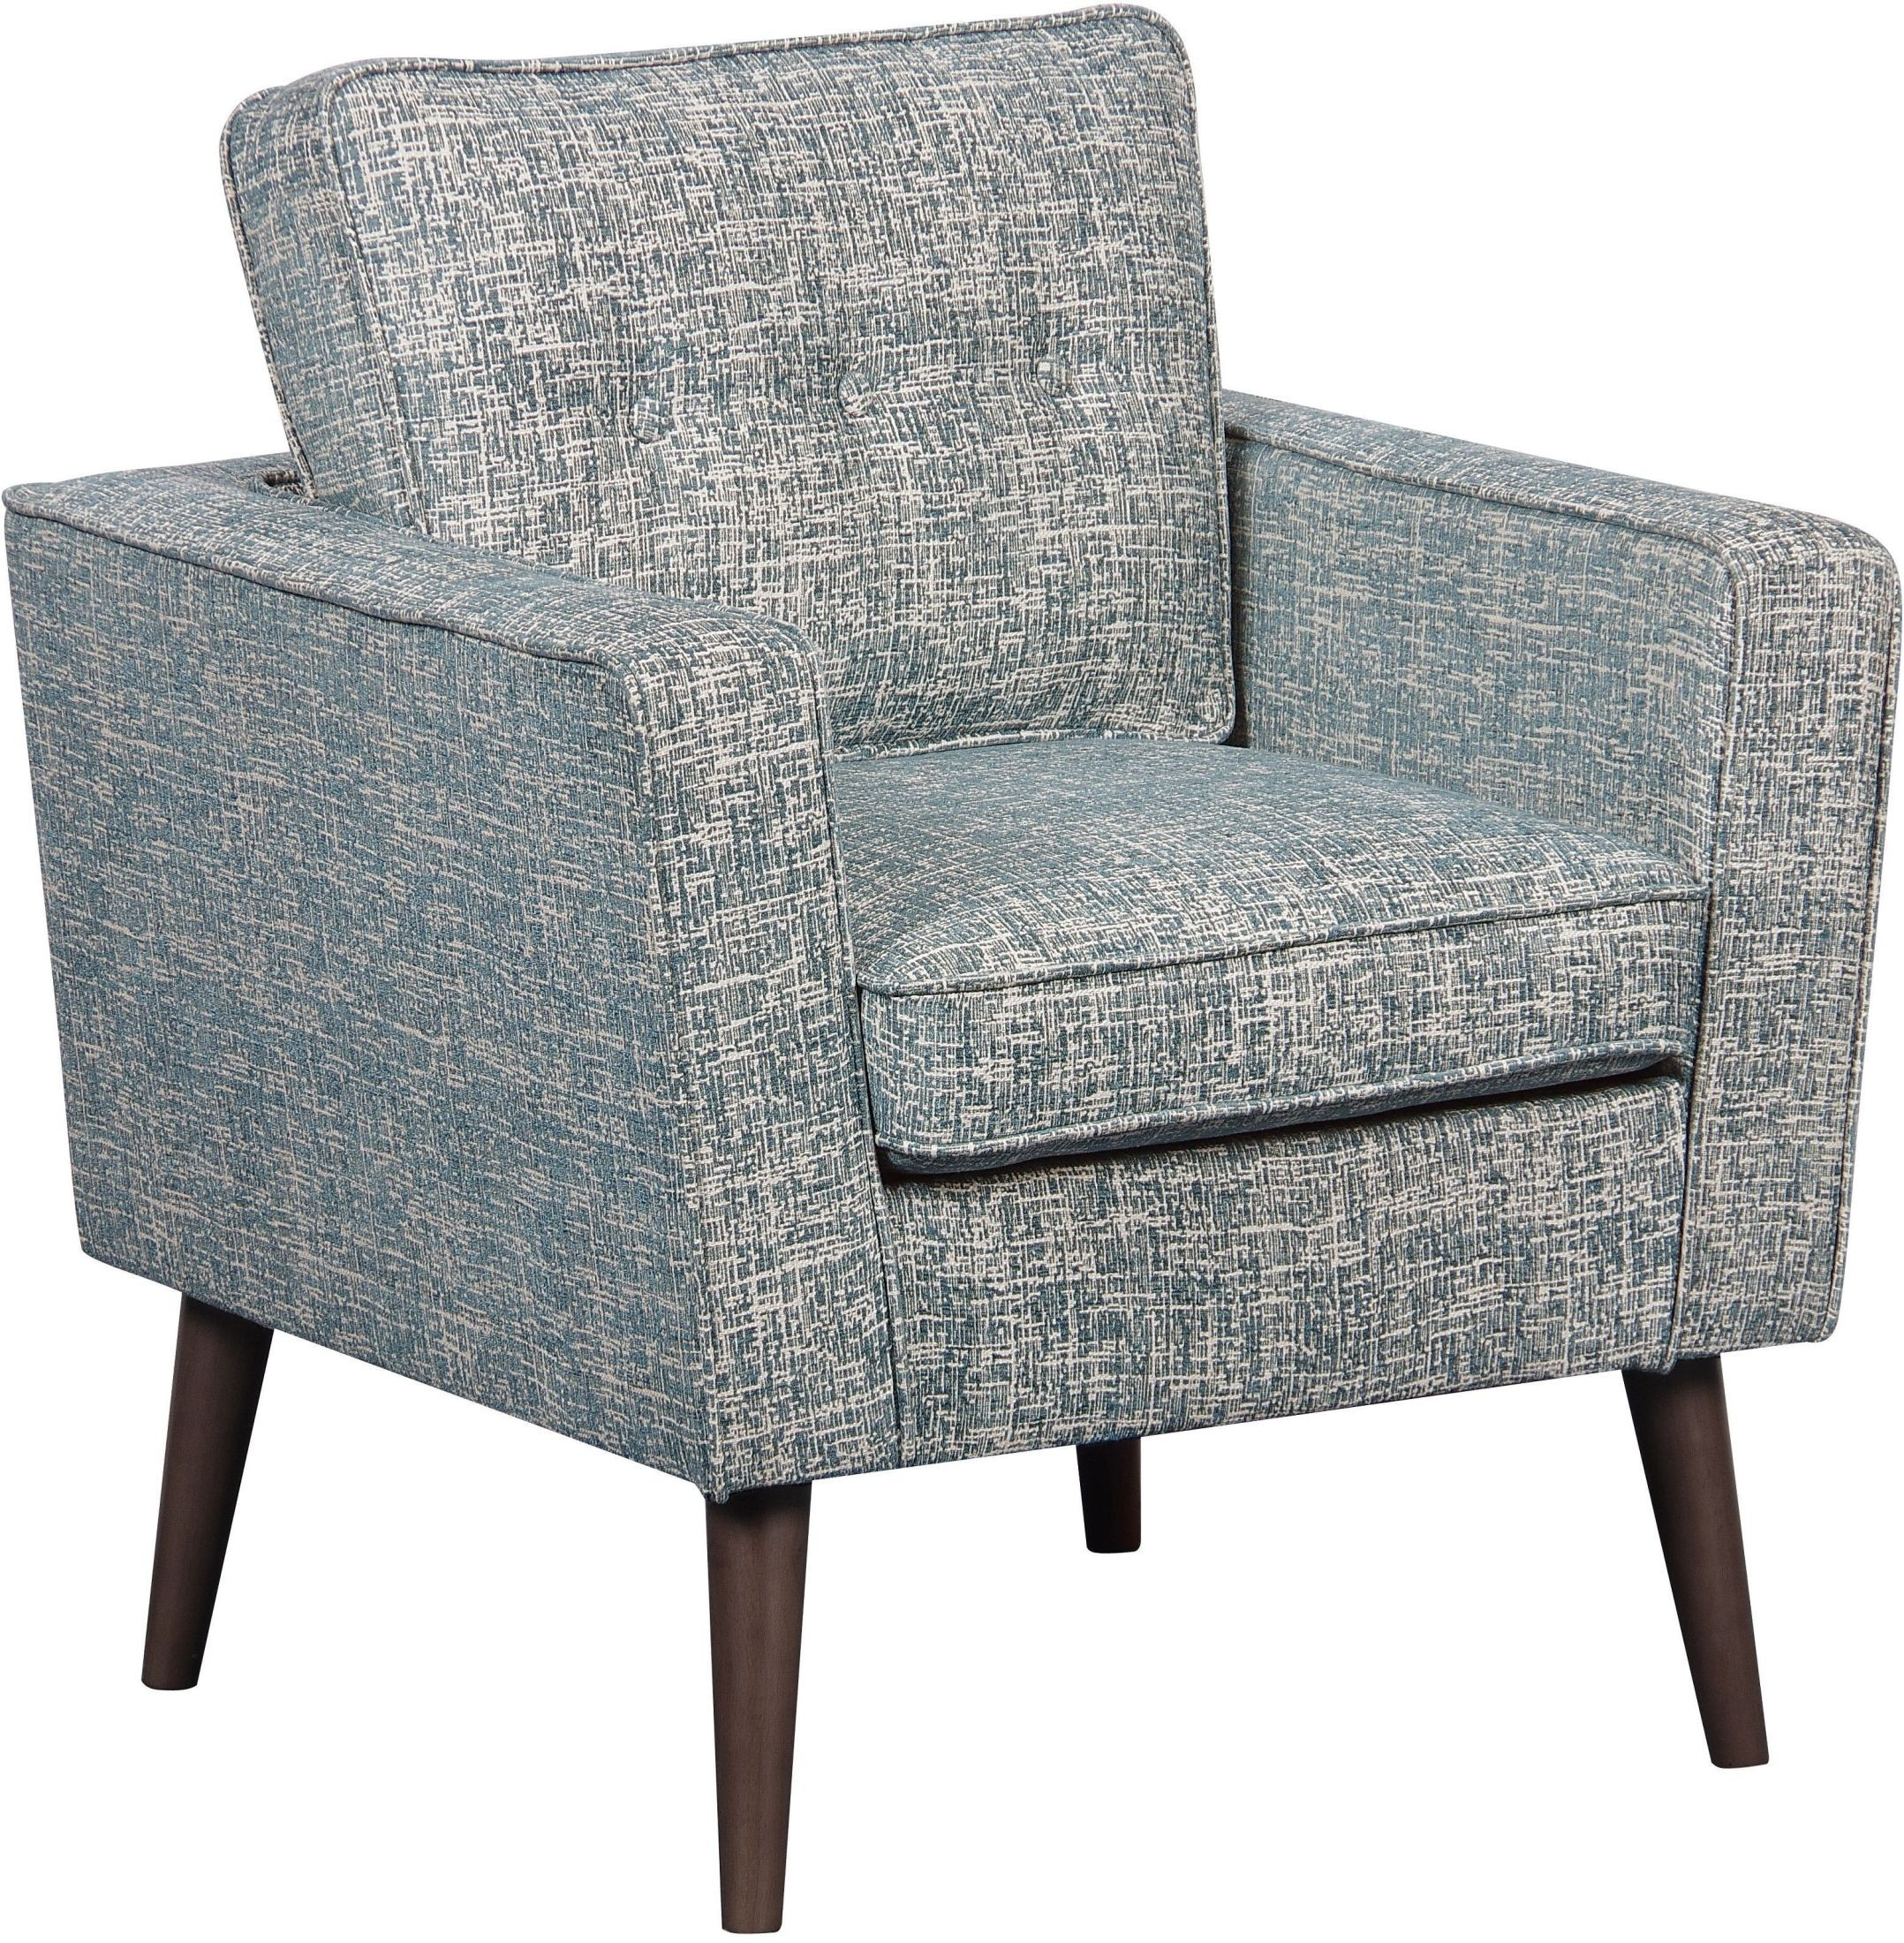 mid century modern lagoon textured accent chair from pulaski coleman furniture. Black Bedroom Furniture Sets. Home Design Ideas